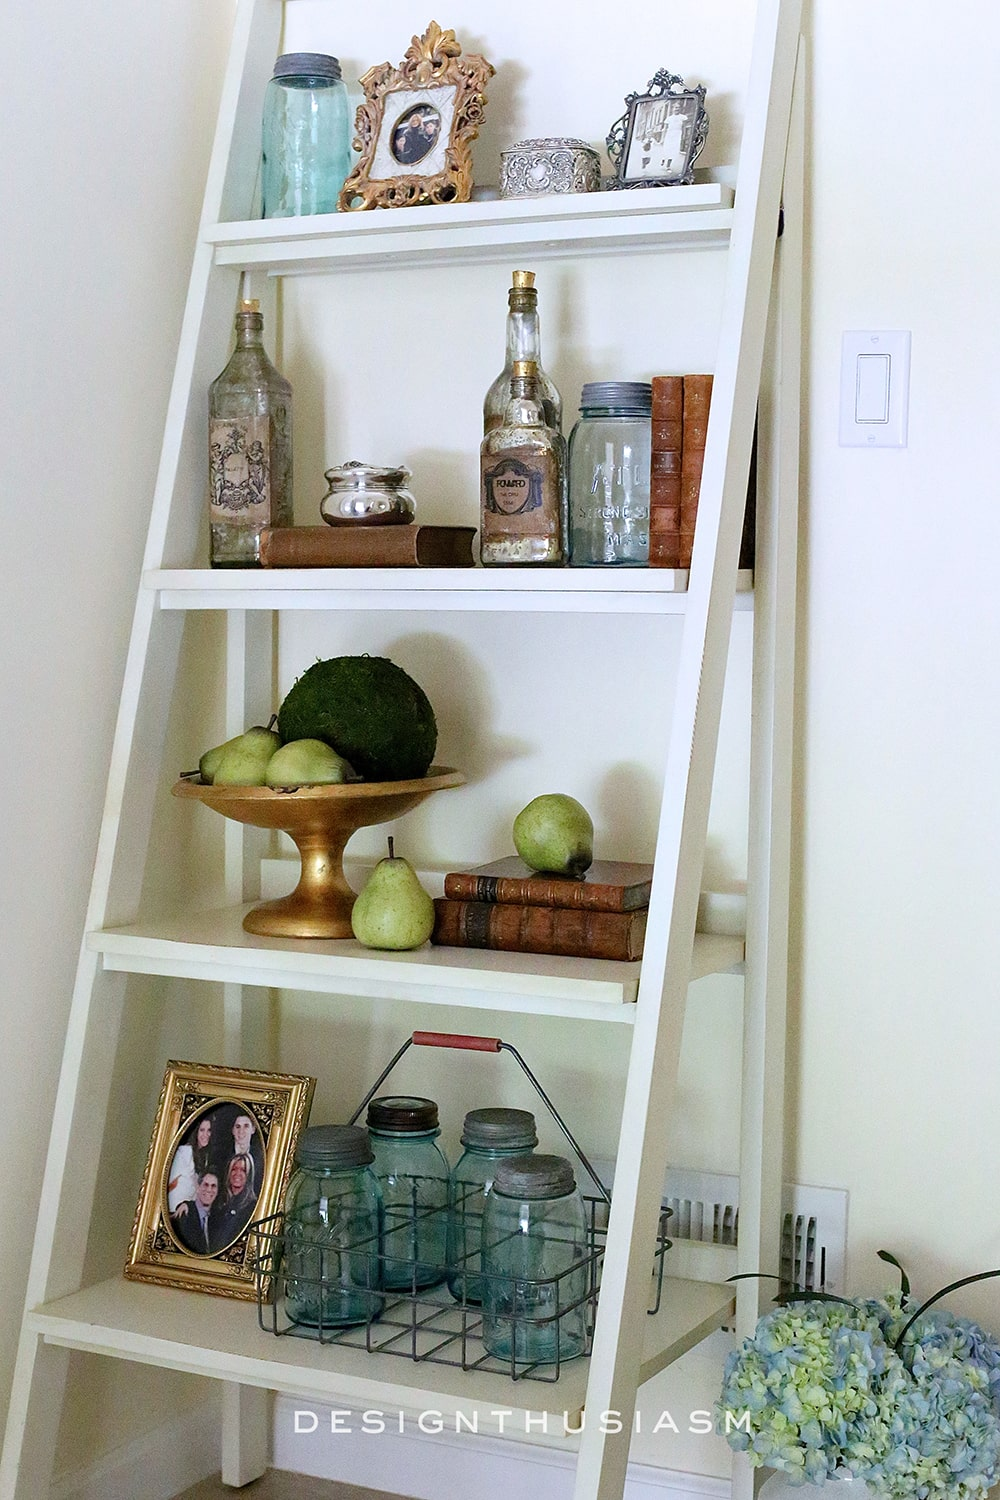 Styling a Ladder Bookshelf | Designthusiasm.com